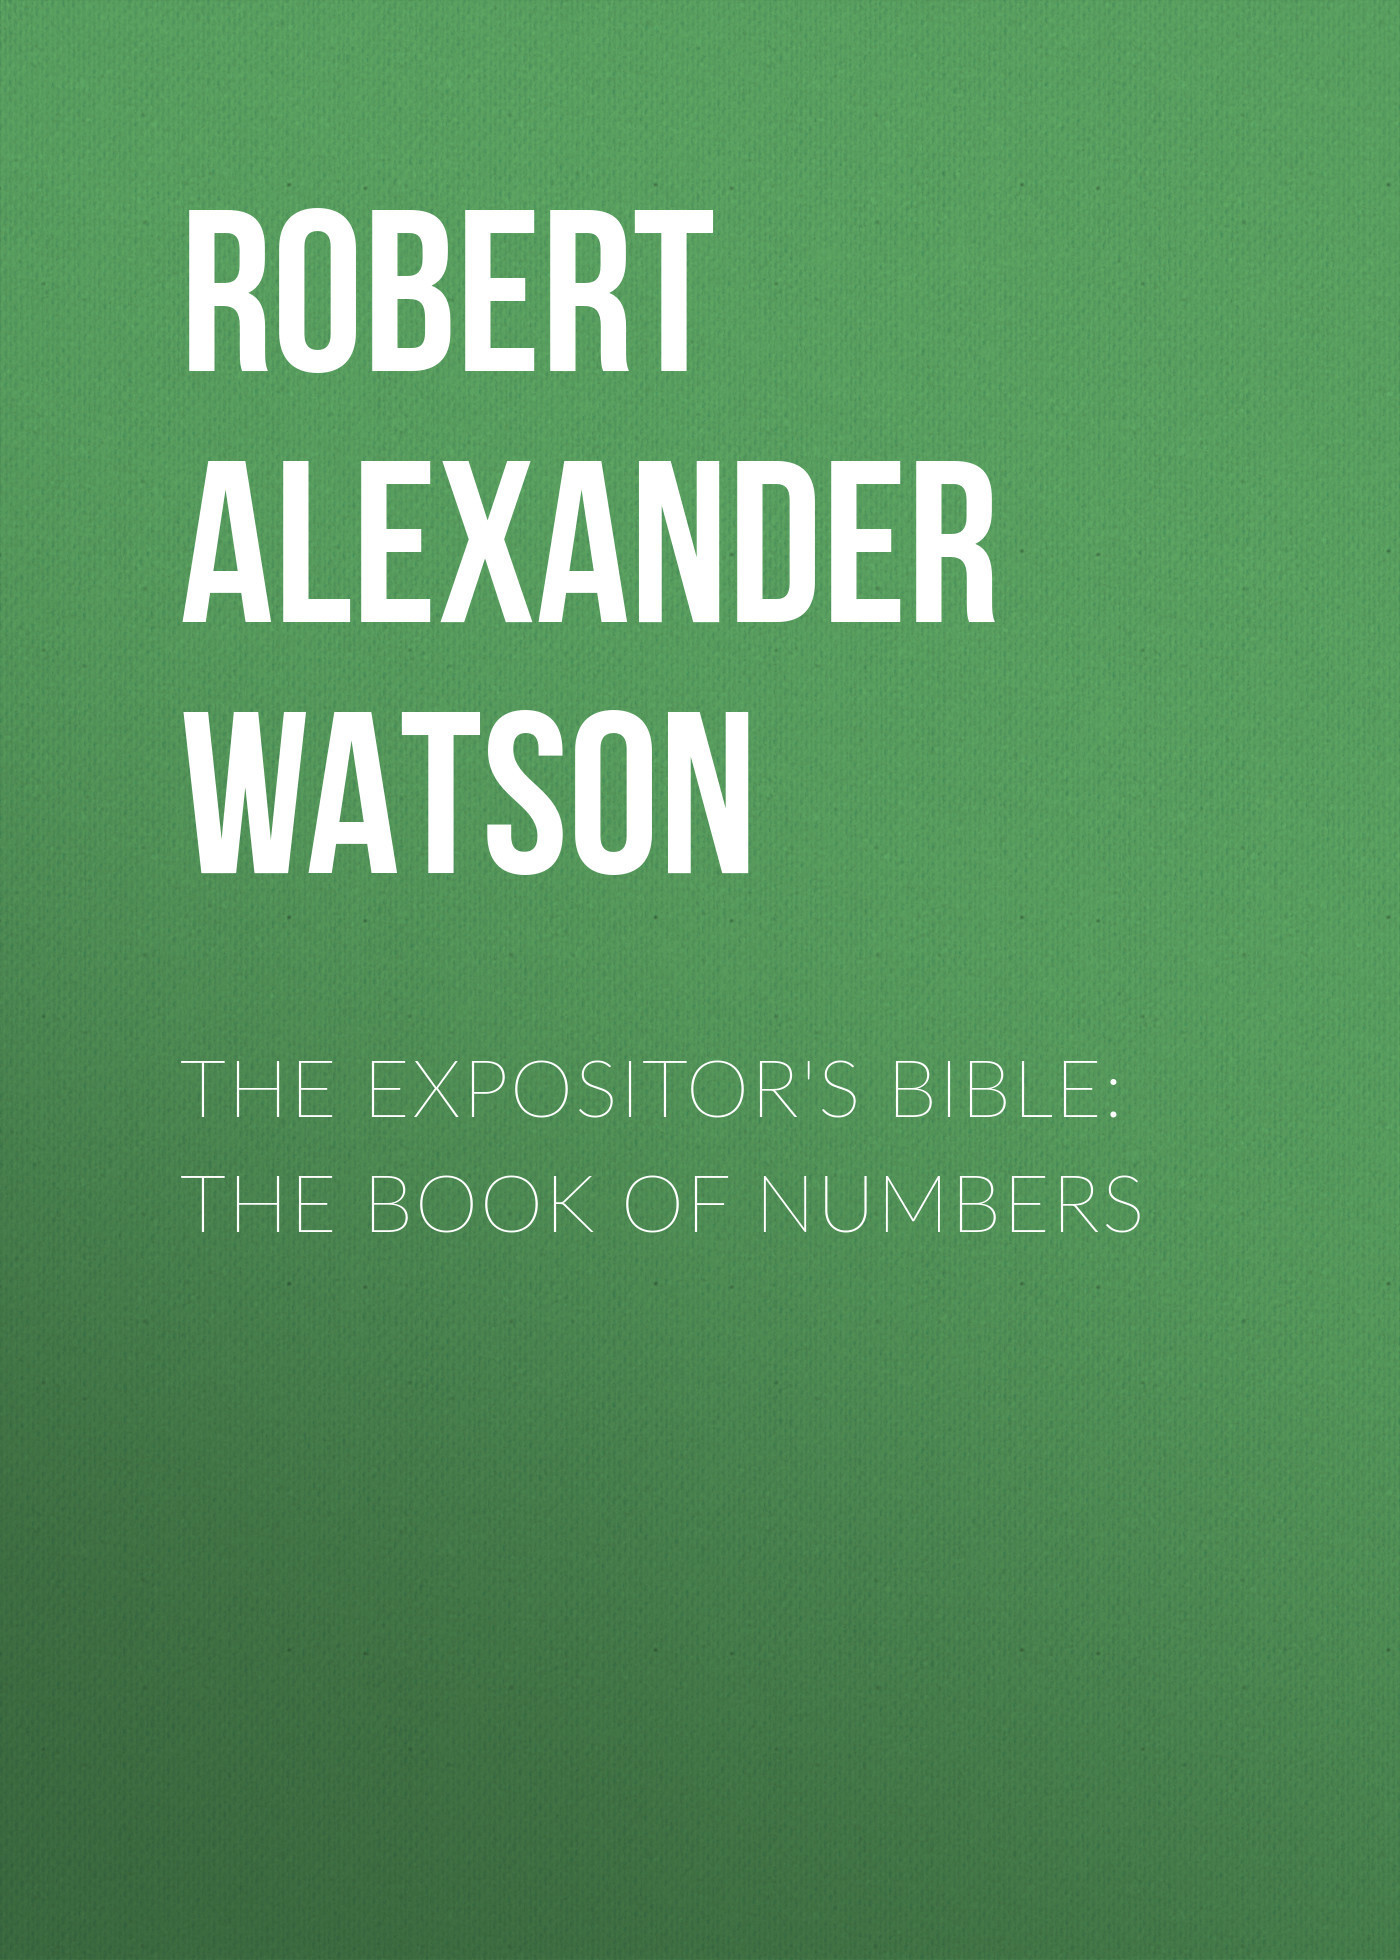 Robert Alexander Watson The Expositor's Bible: The Book of Numbers greenwell j first numbers sticker book